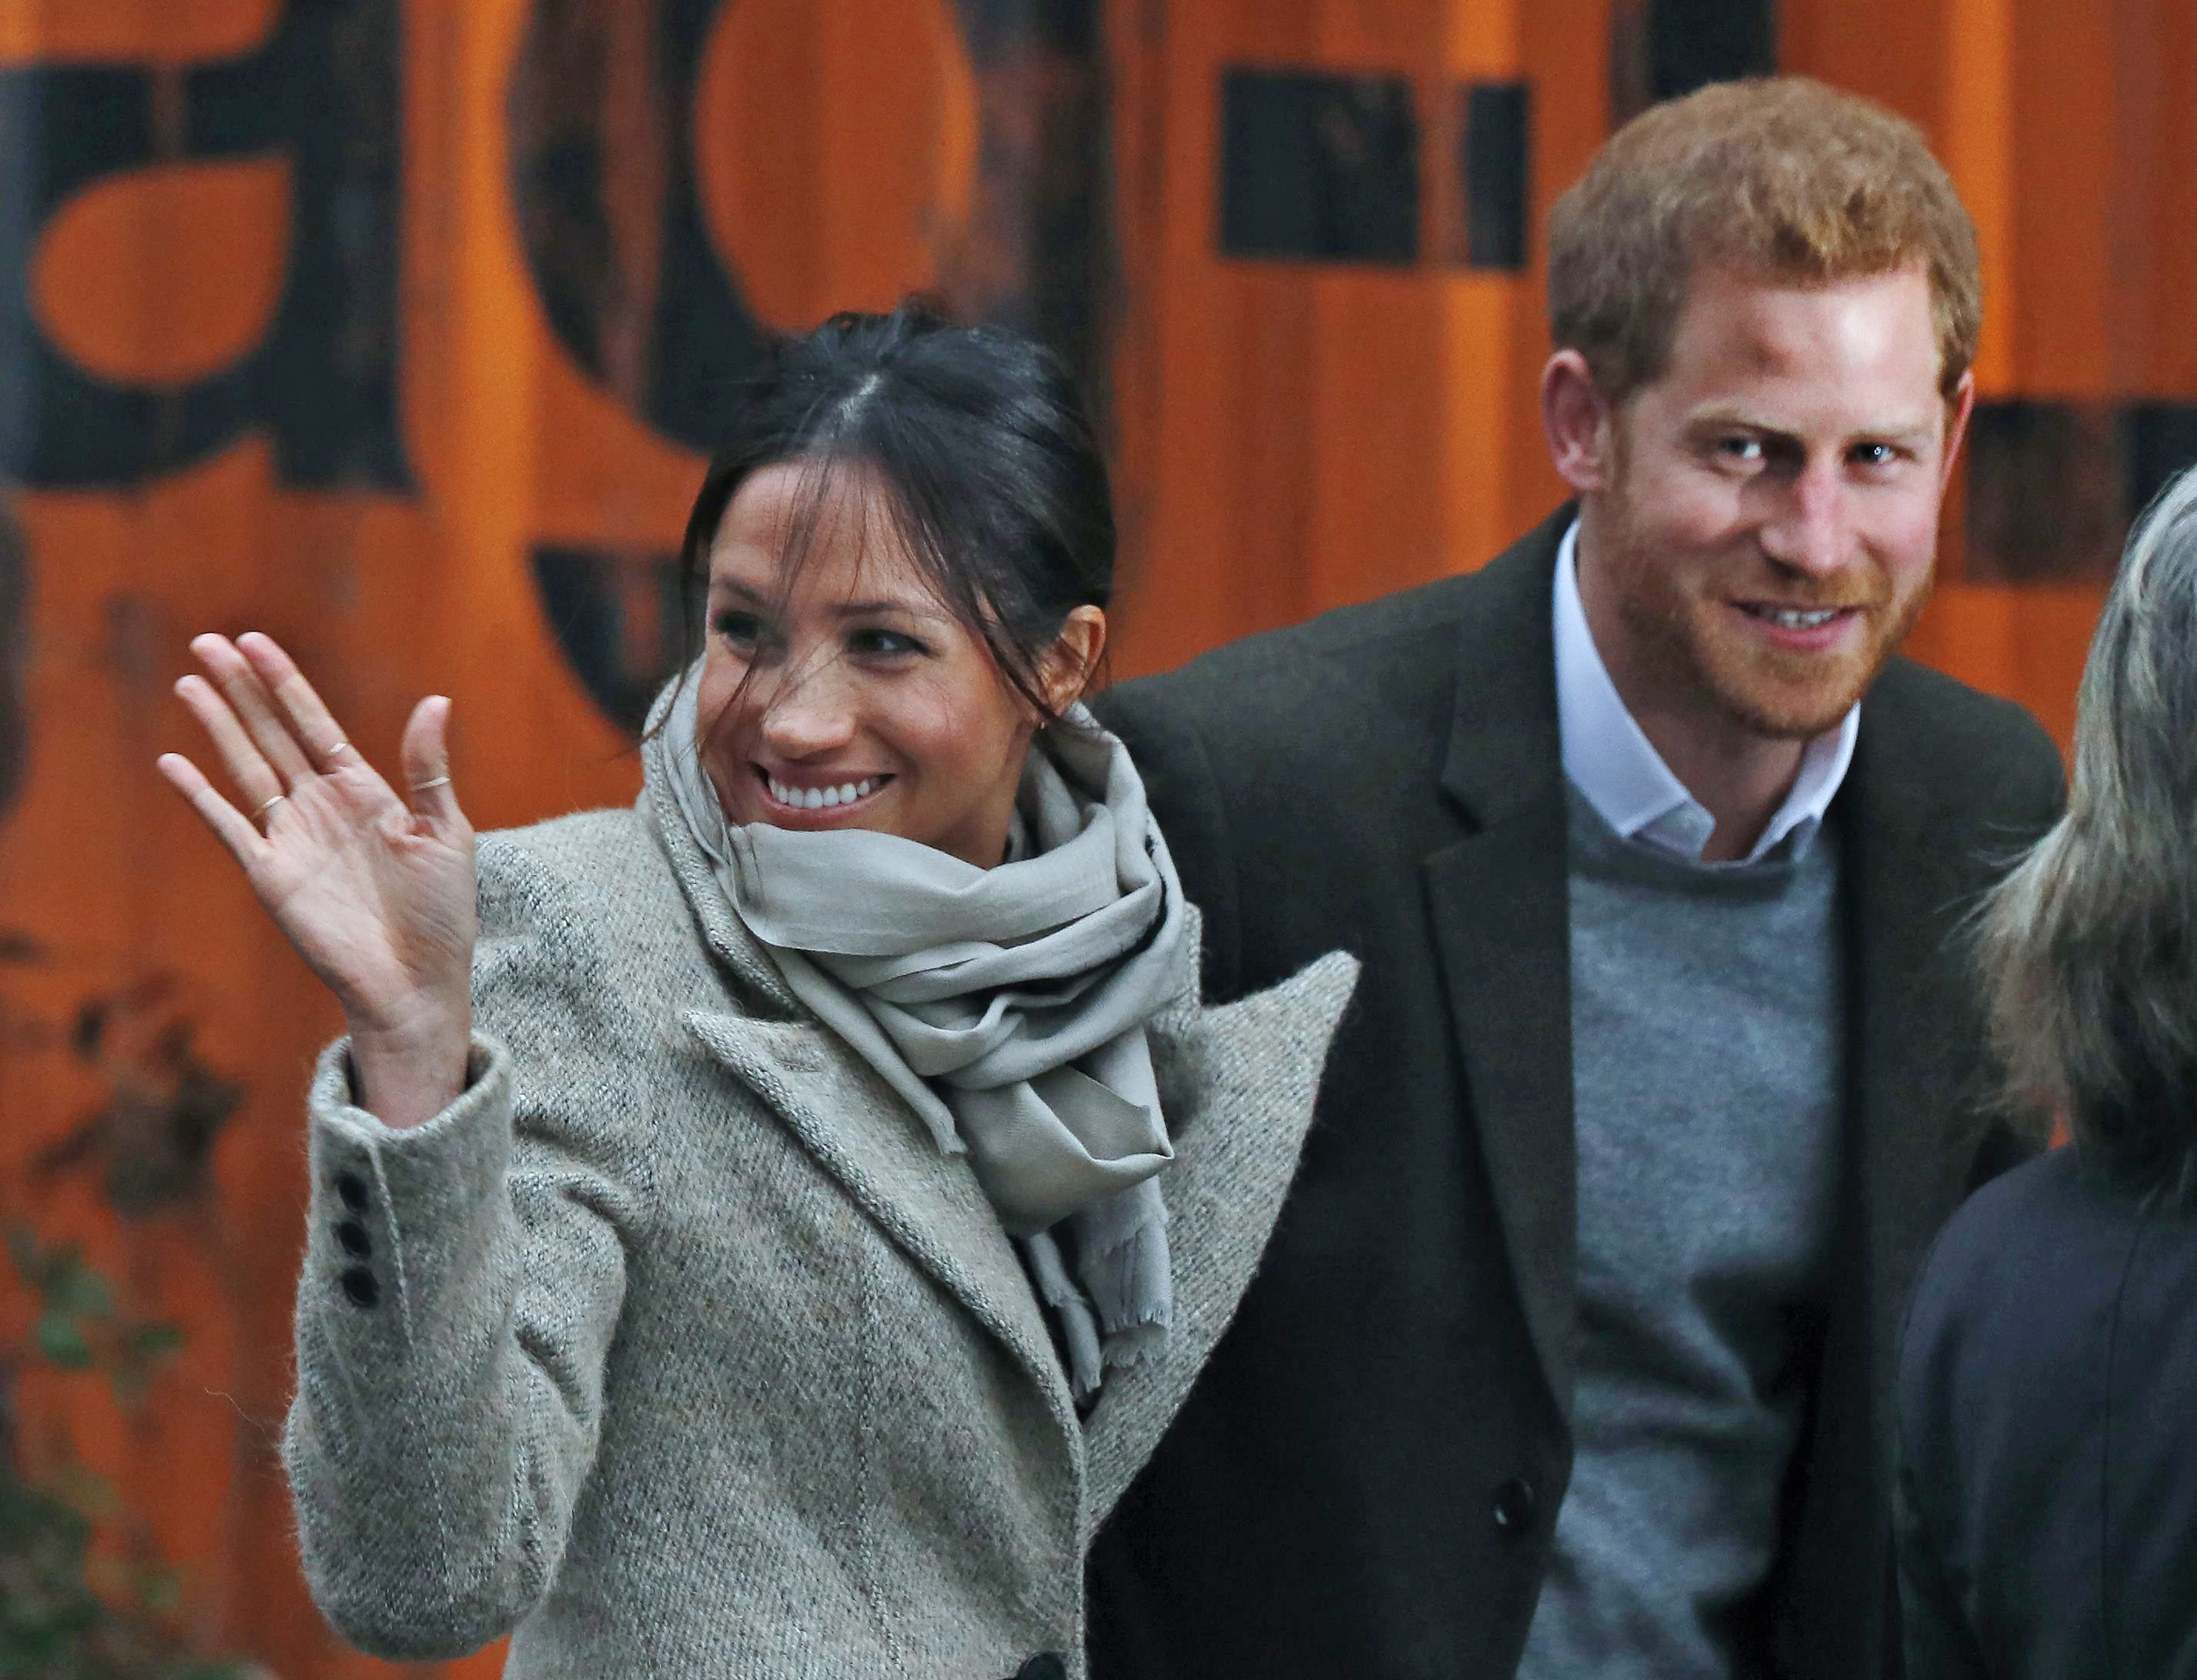 Meghan Markle and Prince Harry's visit divides Brixton